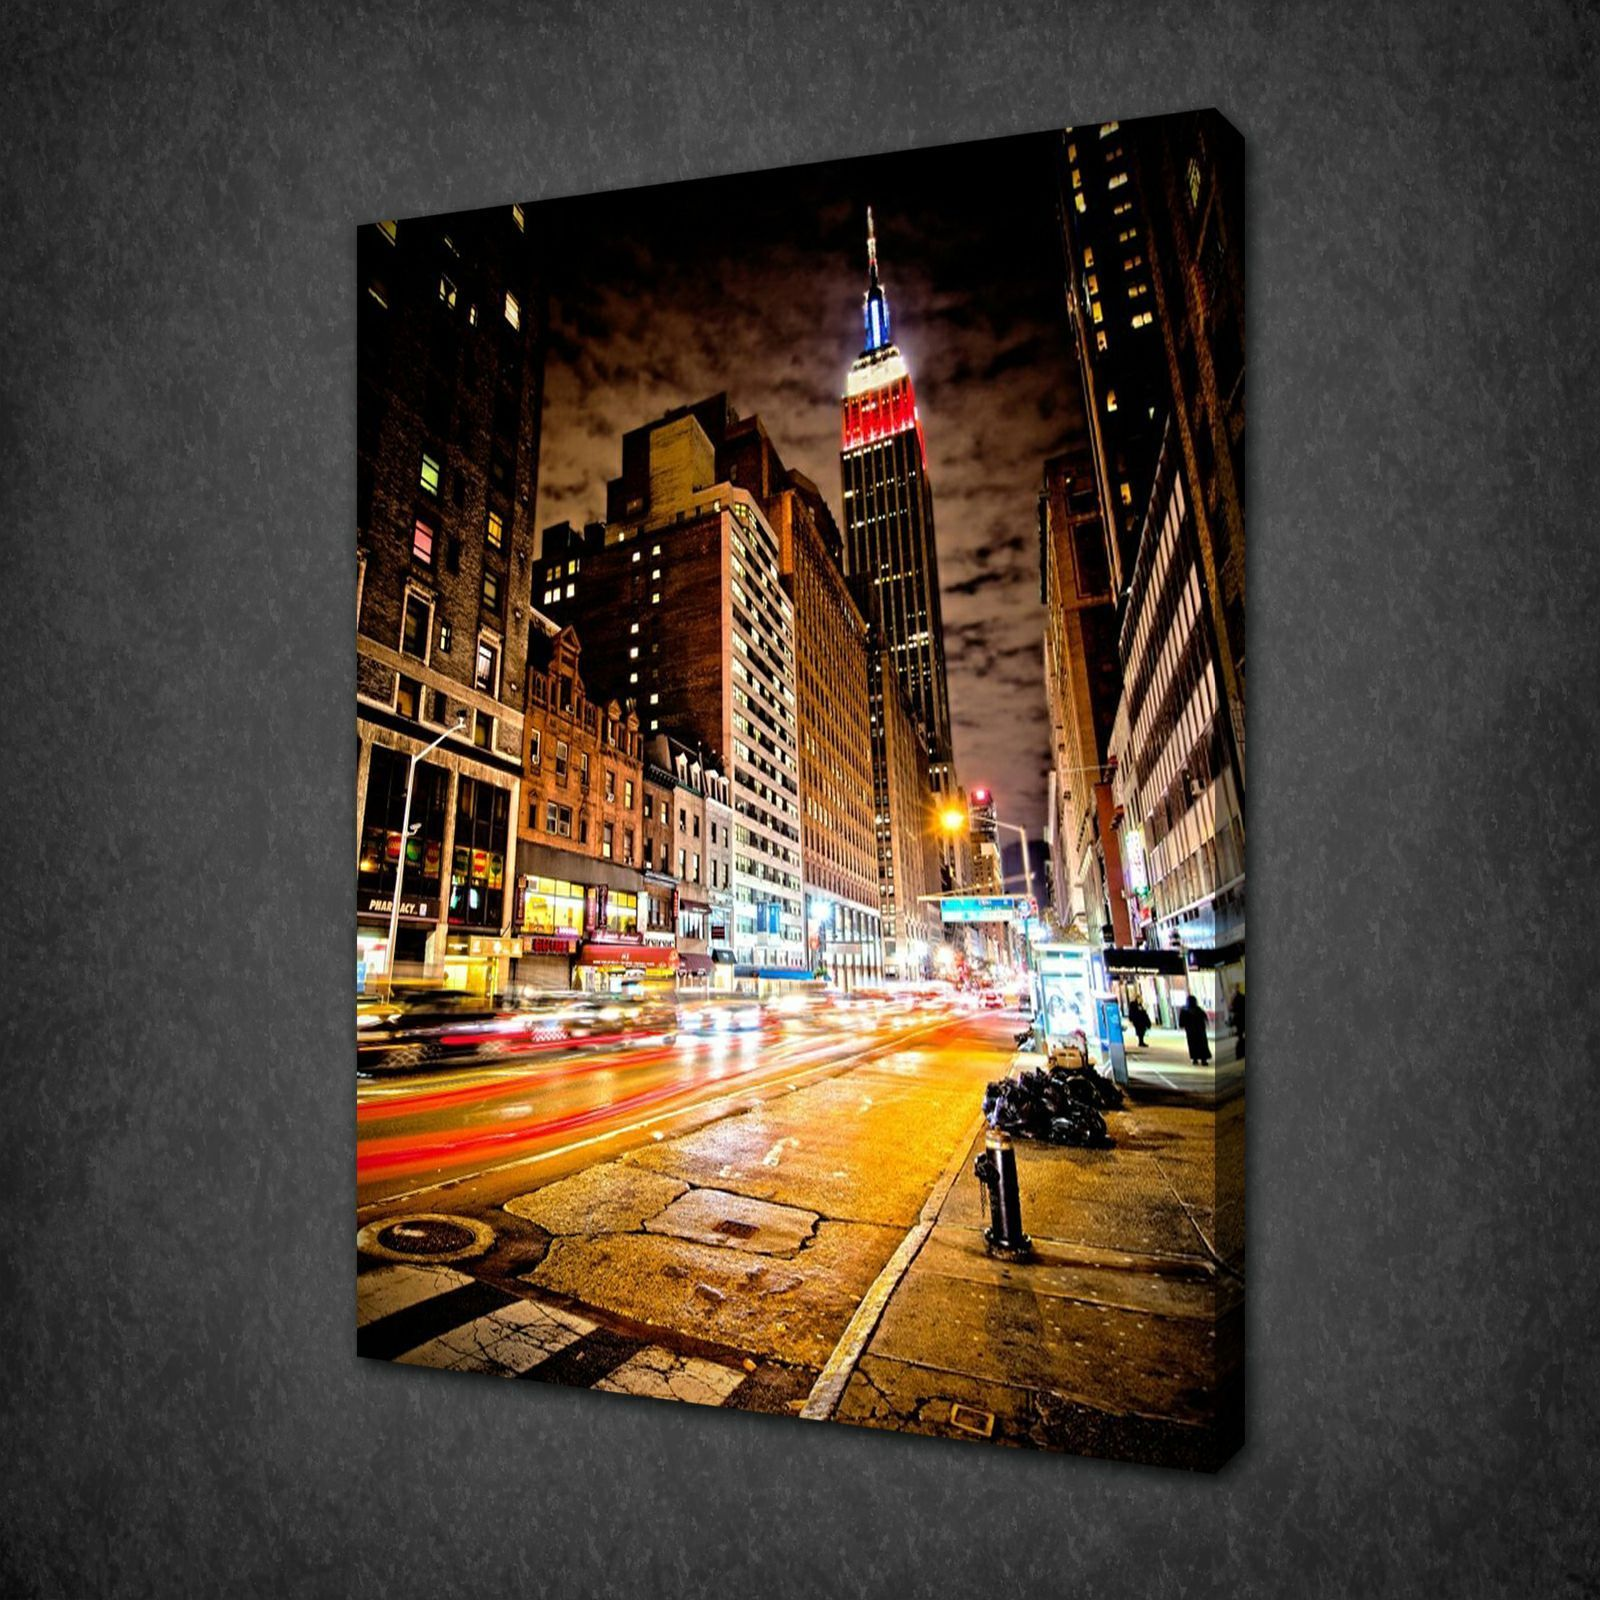 New York City Picture Canvas Painting Modern Wall Art: Canvas Print Pictures. High Quality, Handmade, Free Next